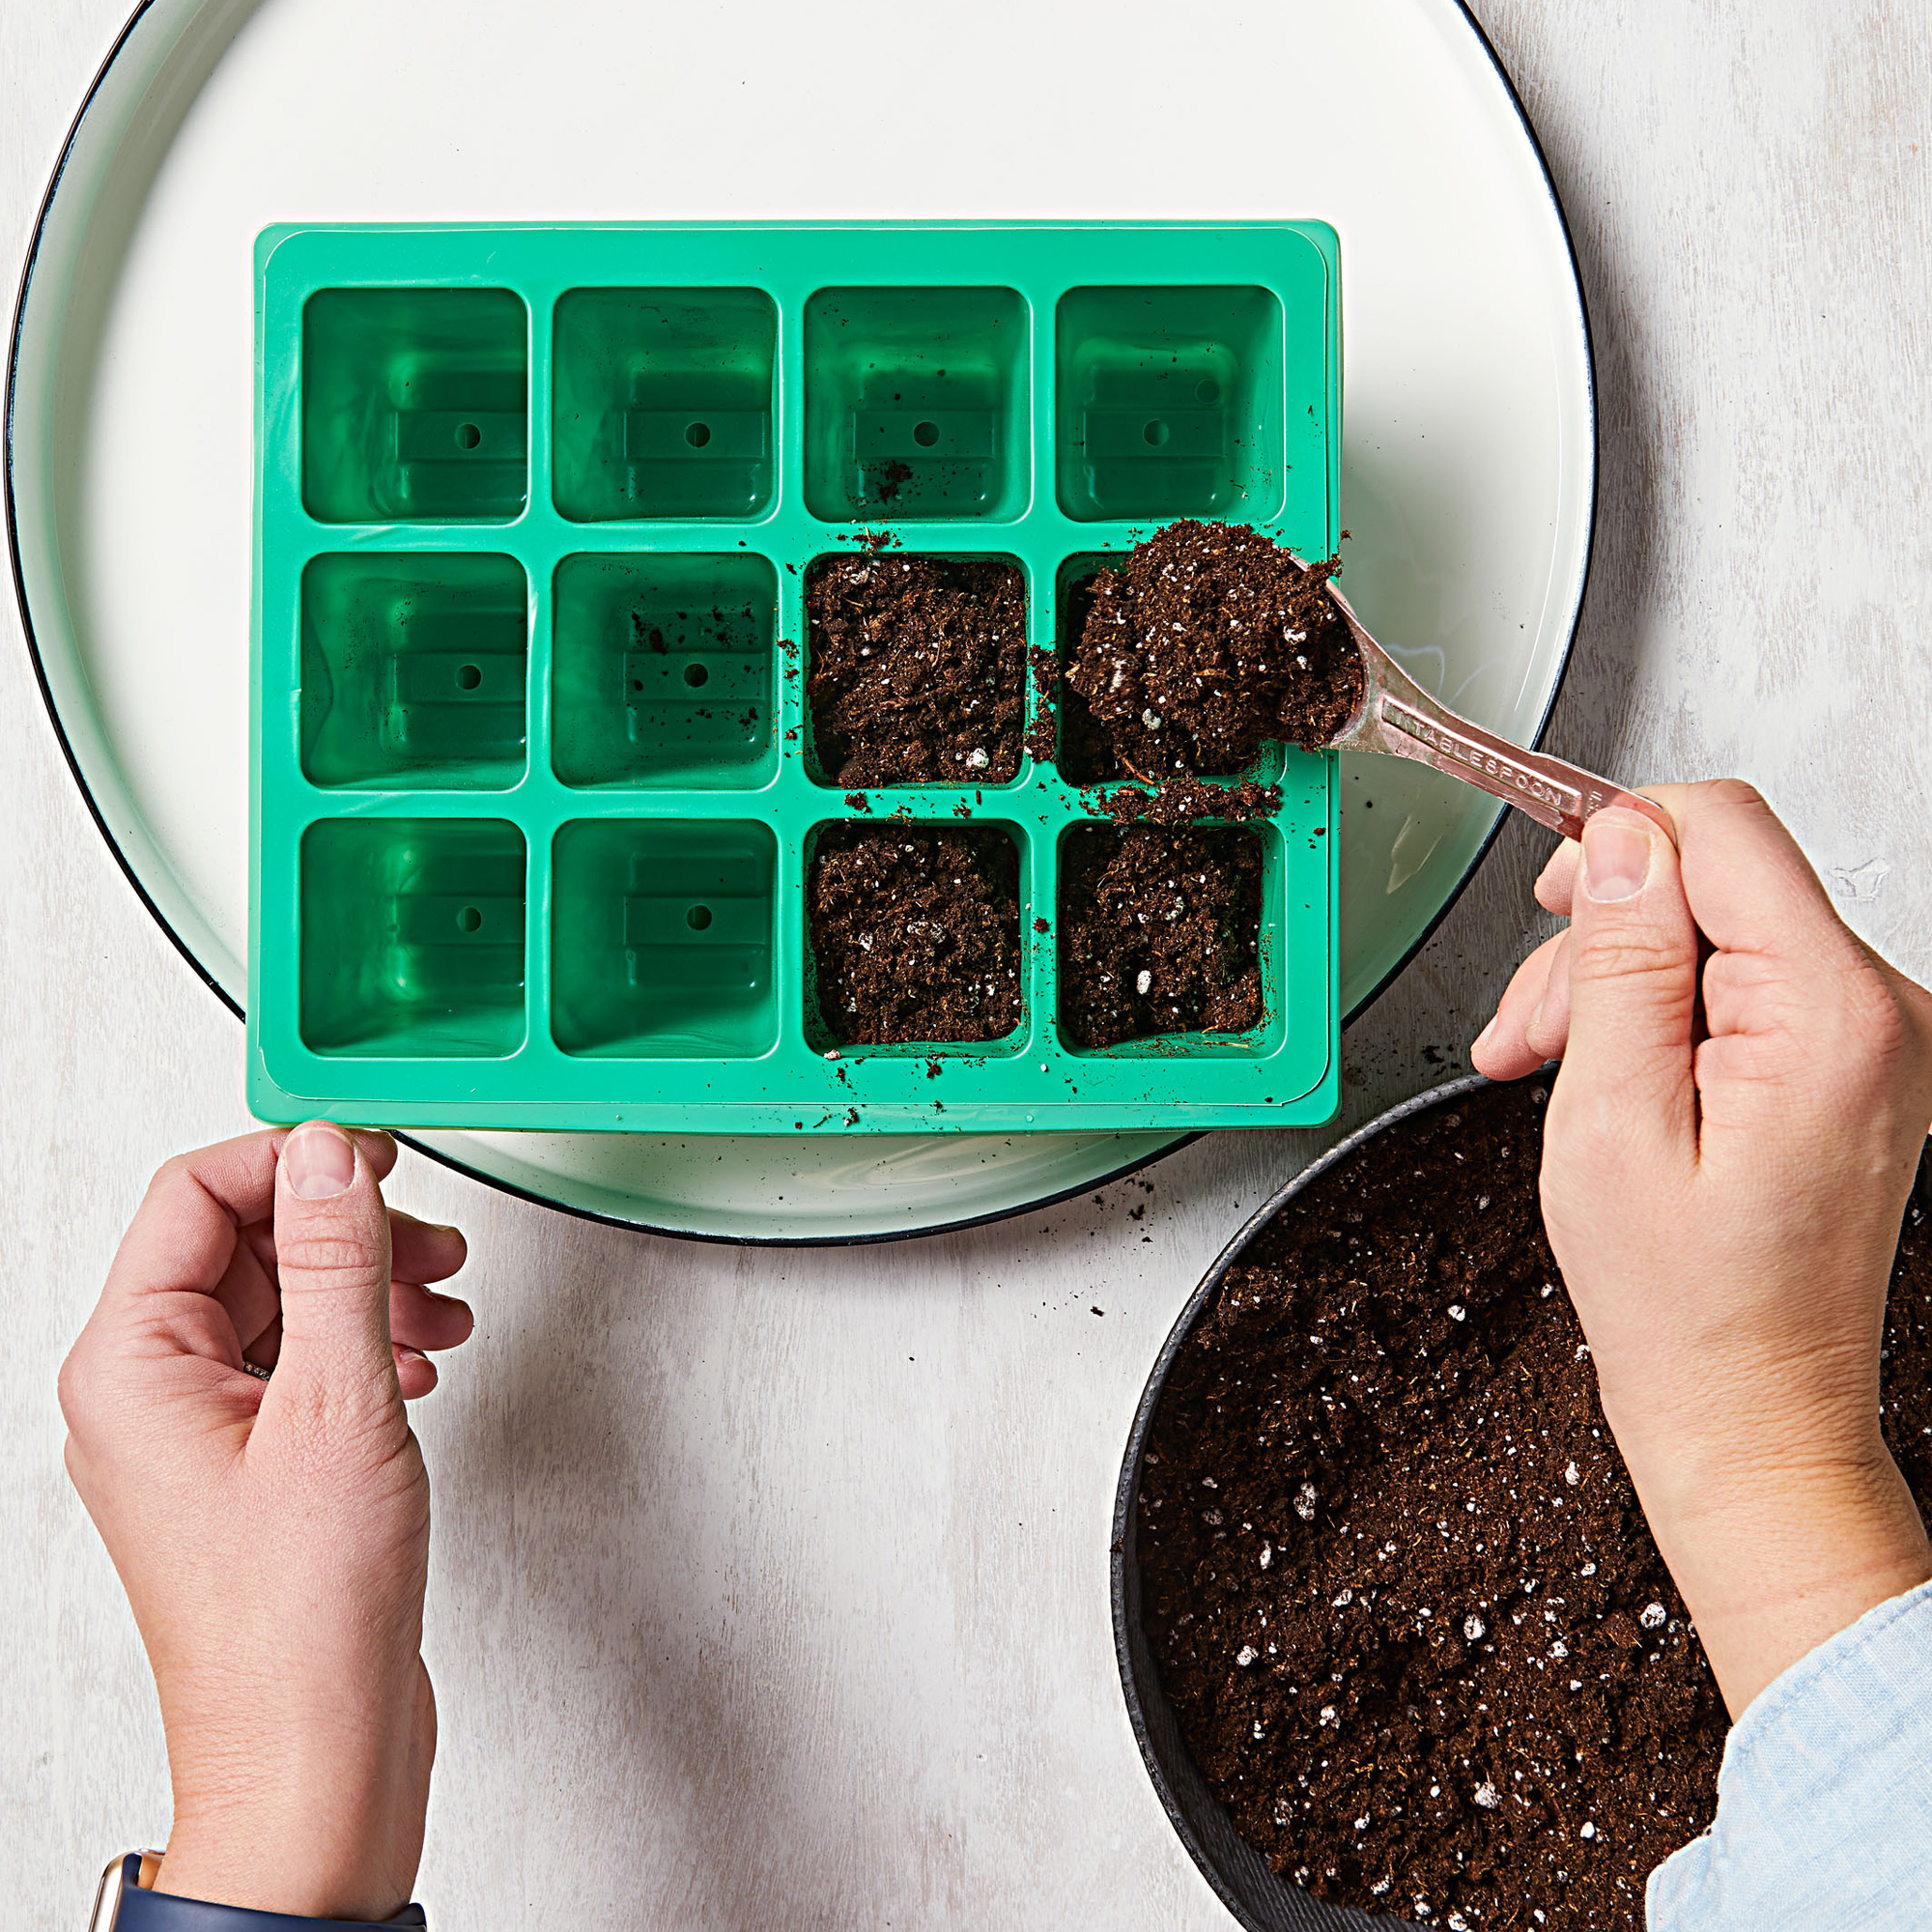 How to start seeds—Step 1